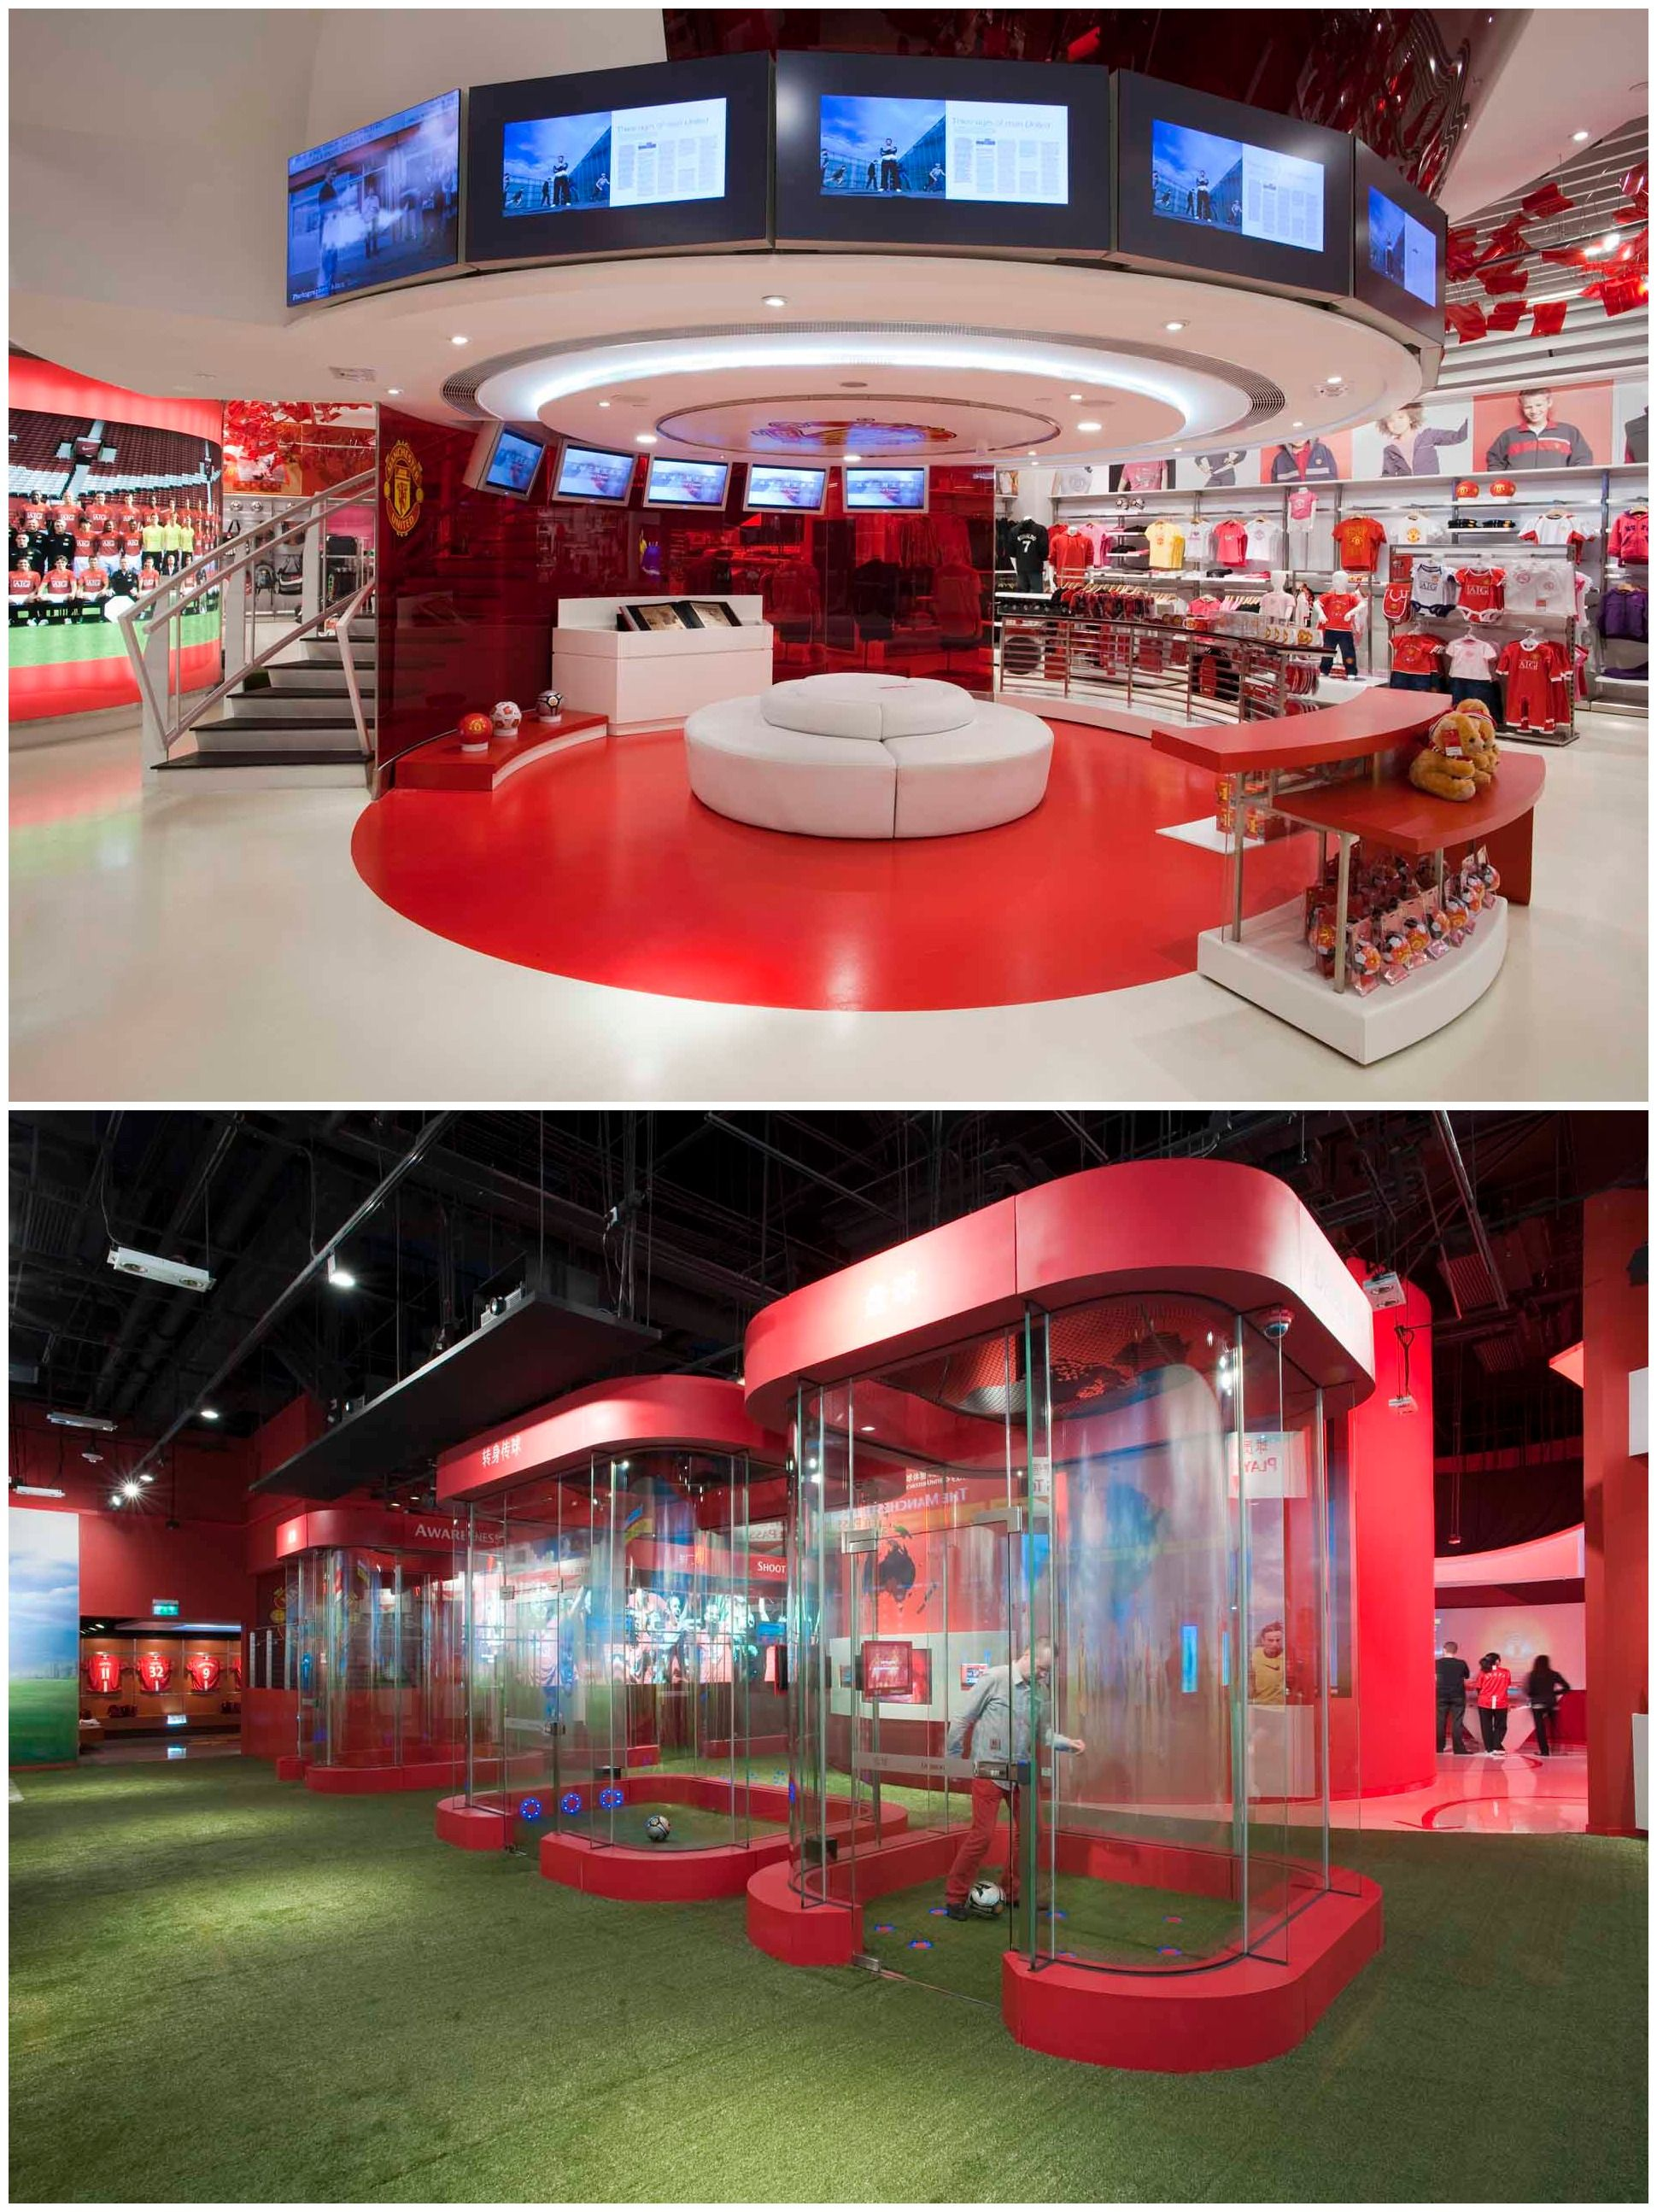 Enjoy Quick Flat-Rate Shipping On Any Size Order. Manchester United Store Mumbai Store Design Manchester United Store Design Retail Design